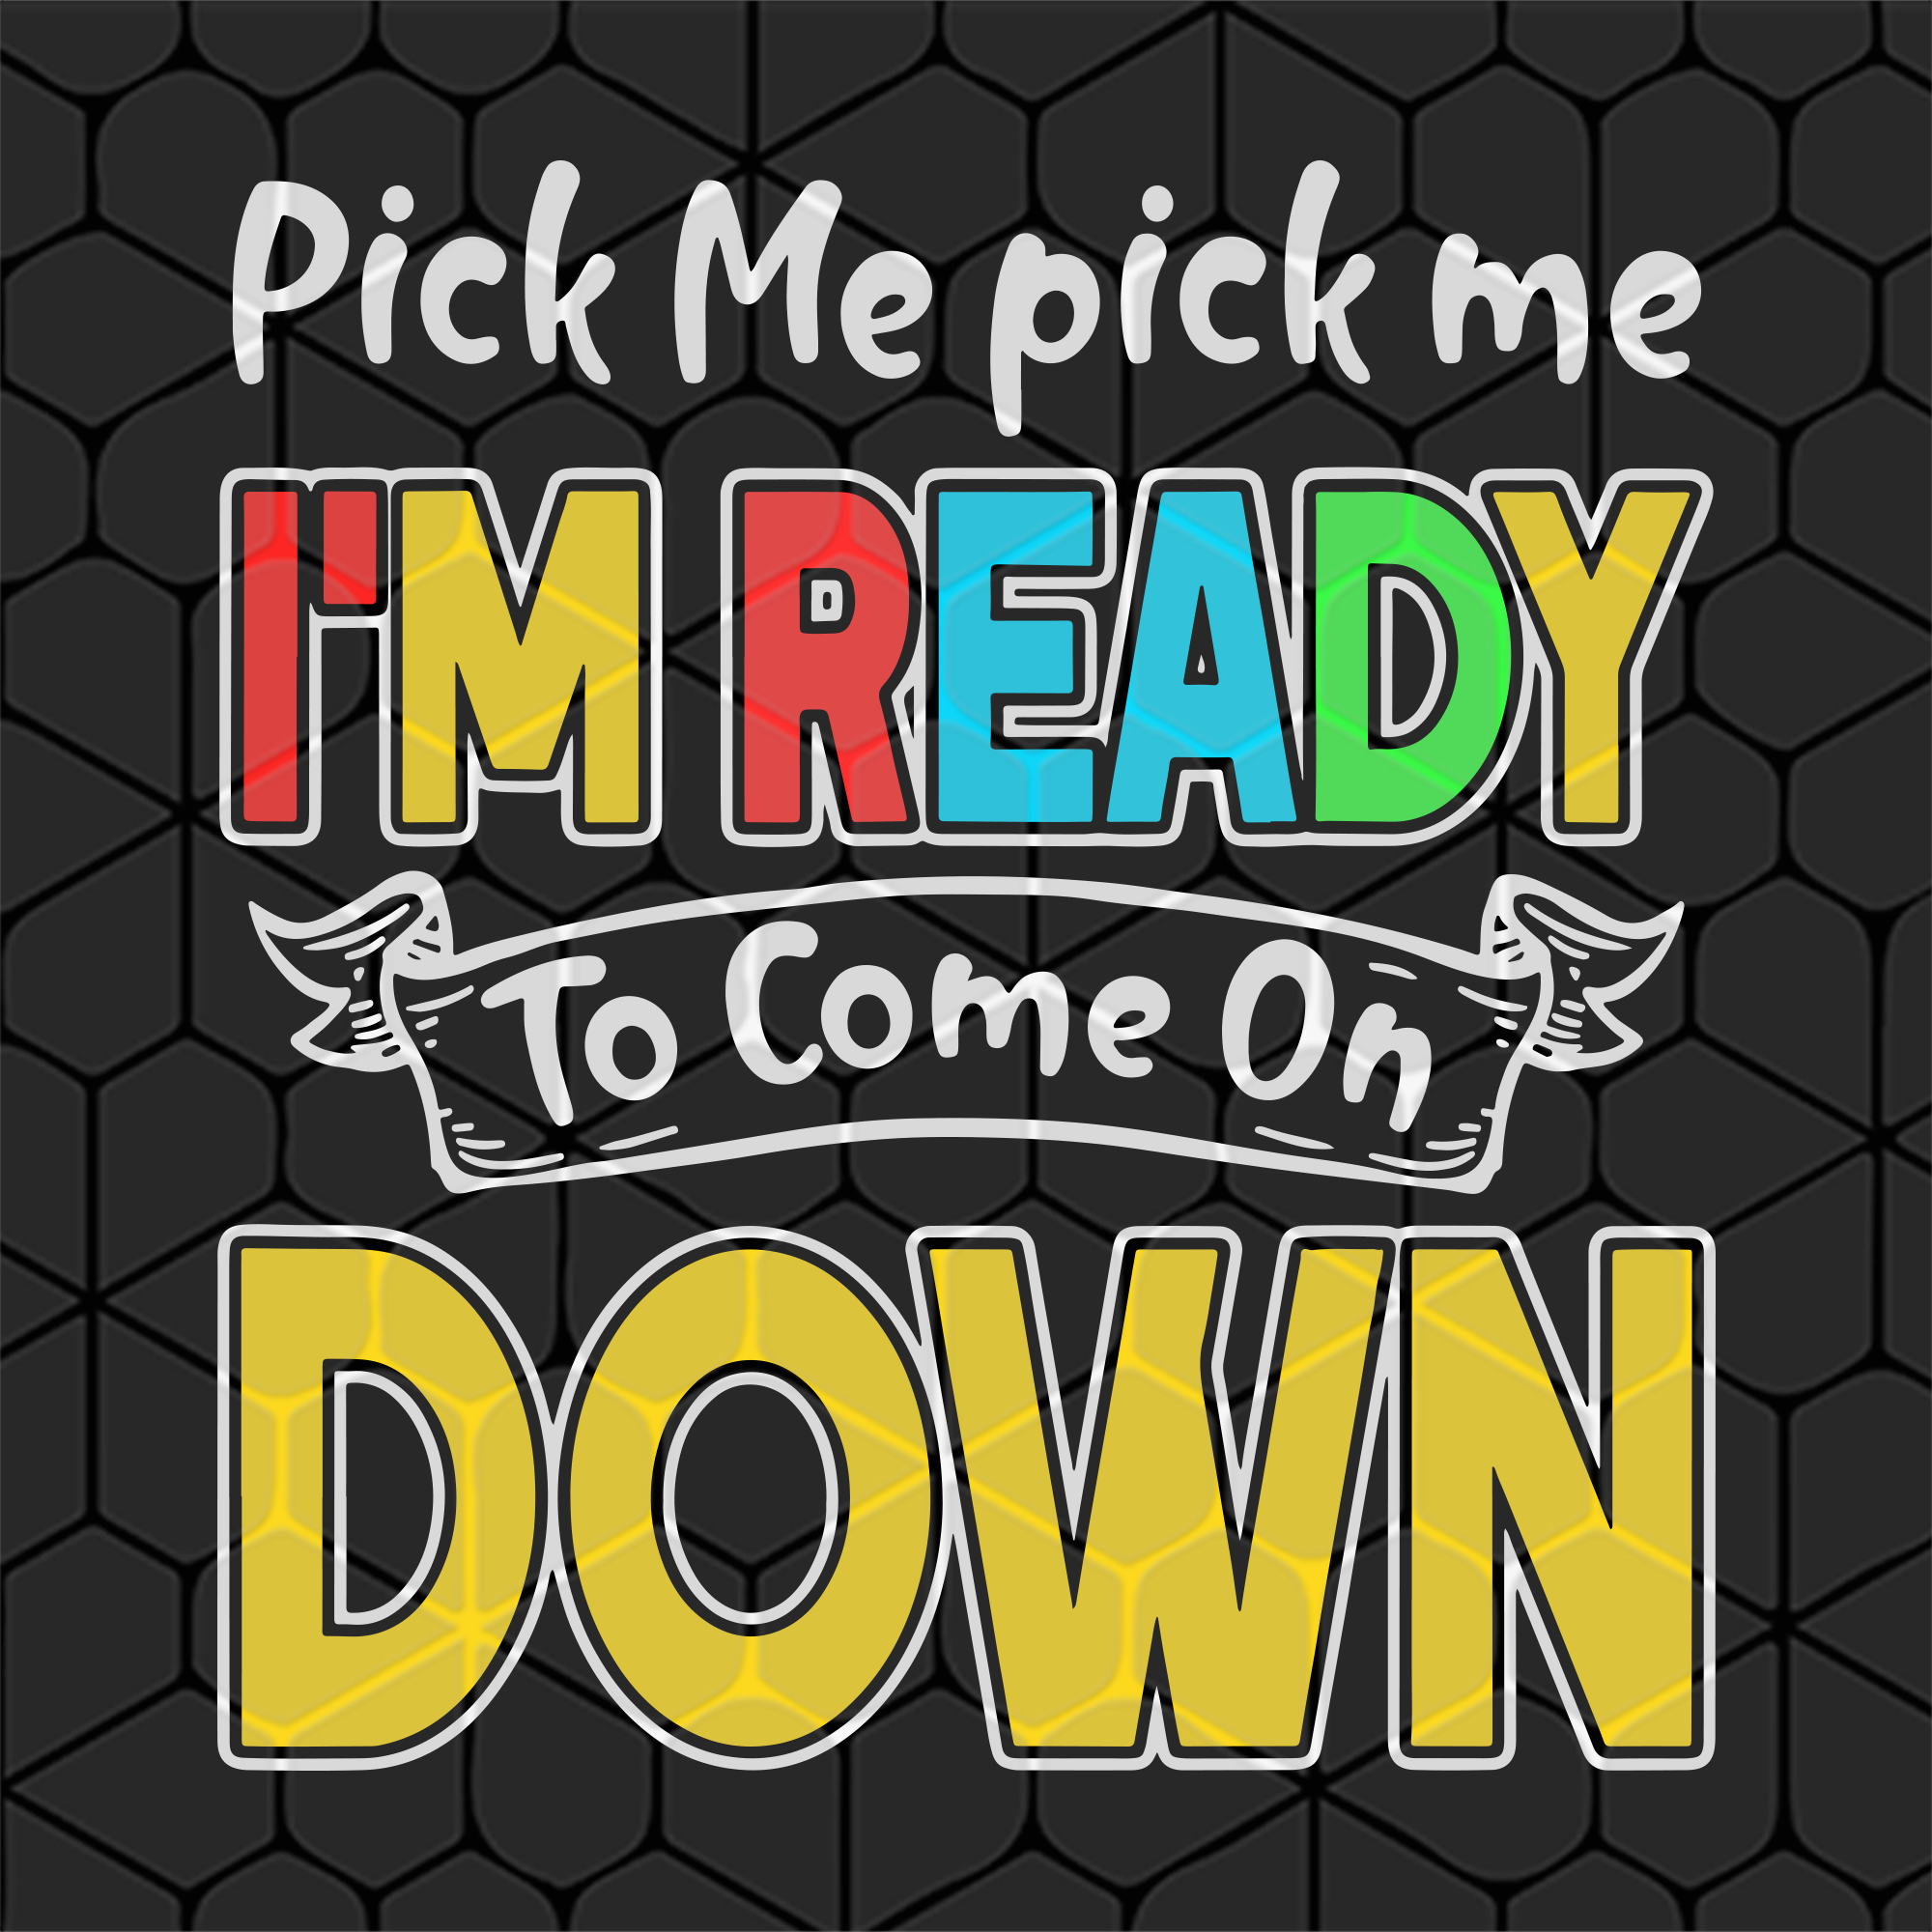 Pick me pick me I'm ready, price is right, the price is right, price is right game, baby price is right, price is right baby, price is right gift, trending svg, Files For Silhouette, Files For Cricut, SVG, DXF, EPS, PNG, Instant Download